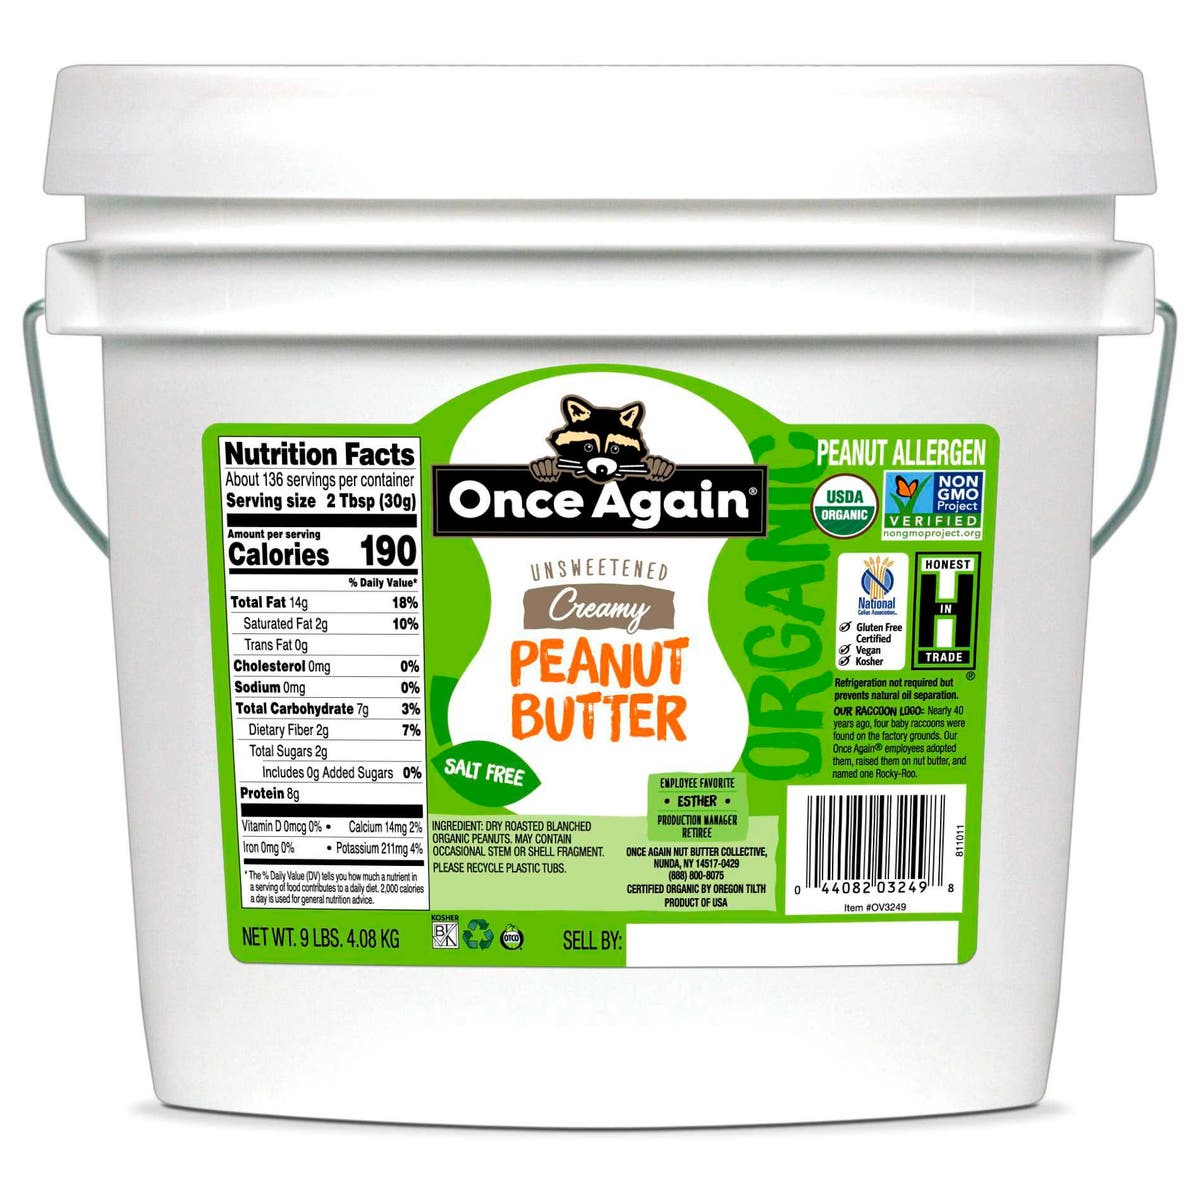 Once Again No Salt Added Creamy Peanut Butter, 9 LB Tub (Pack of 1)